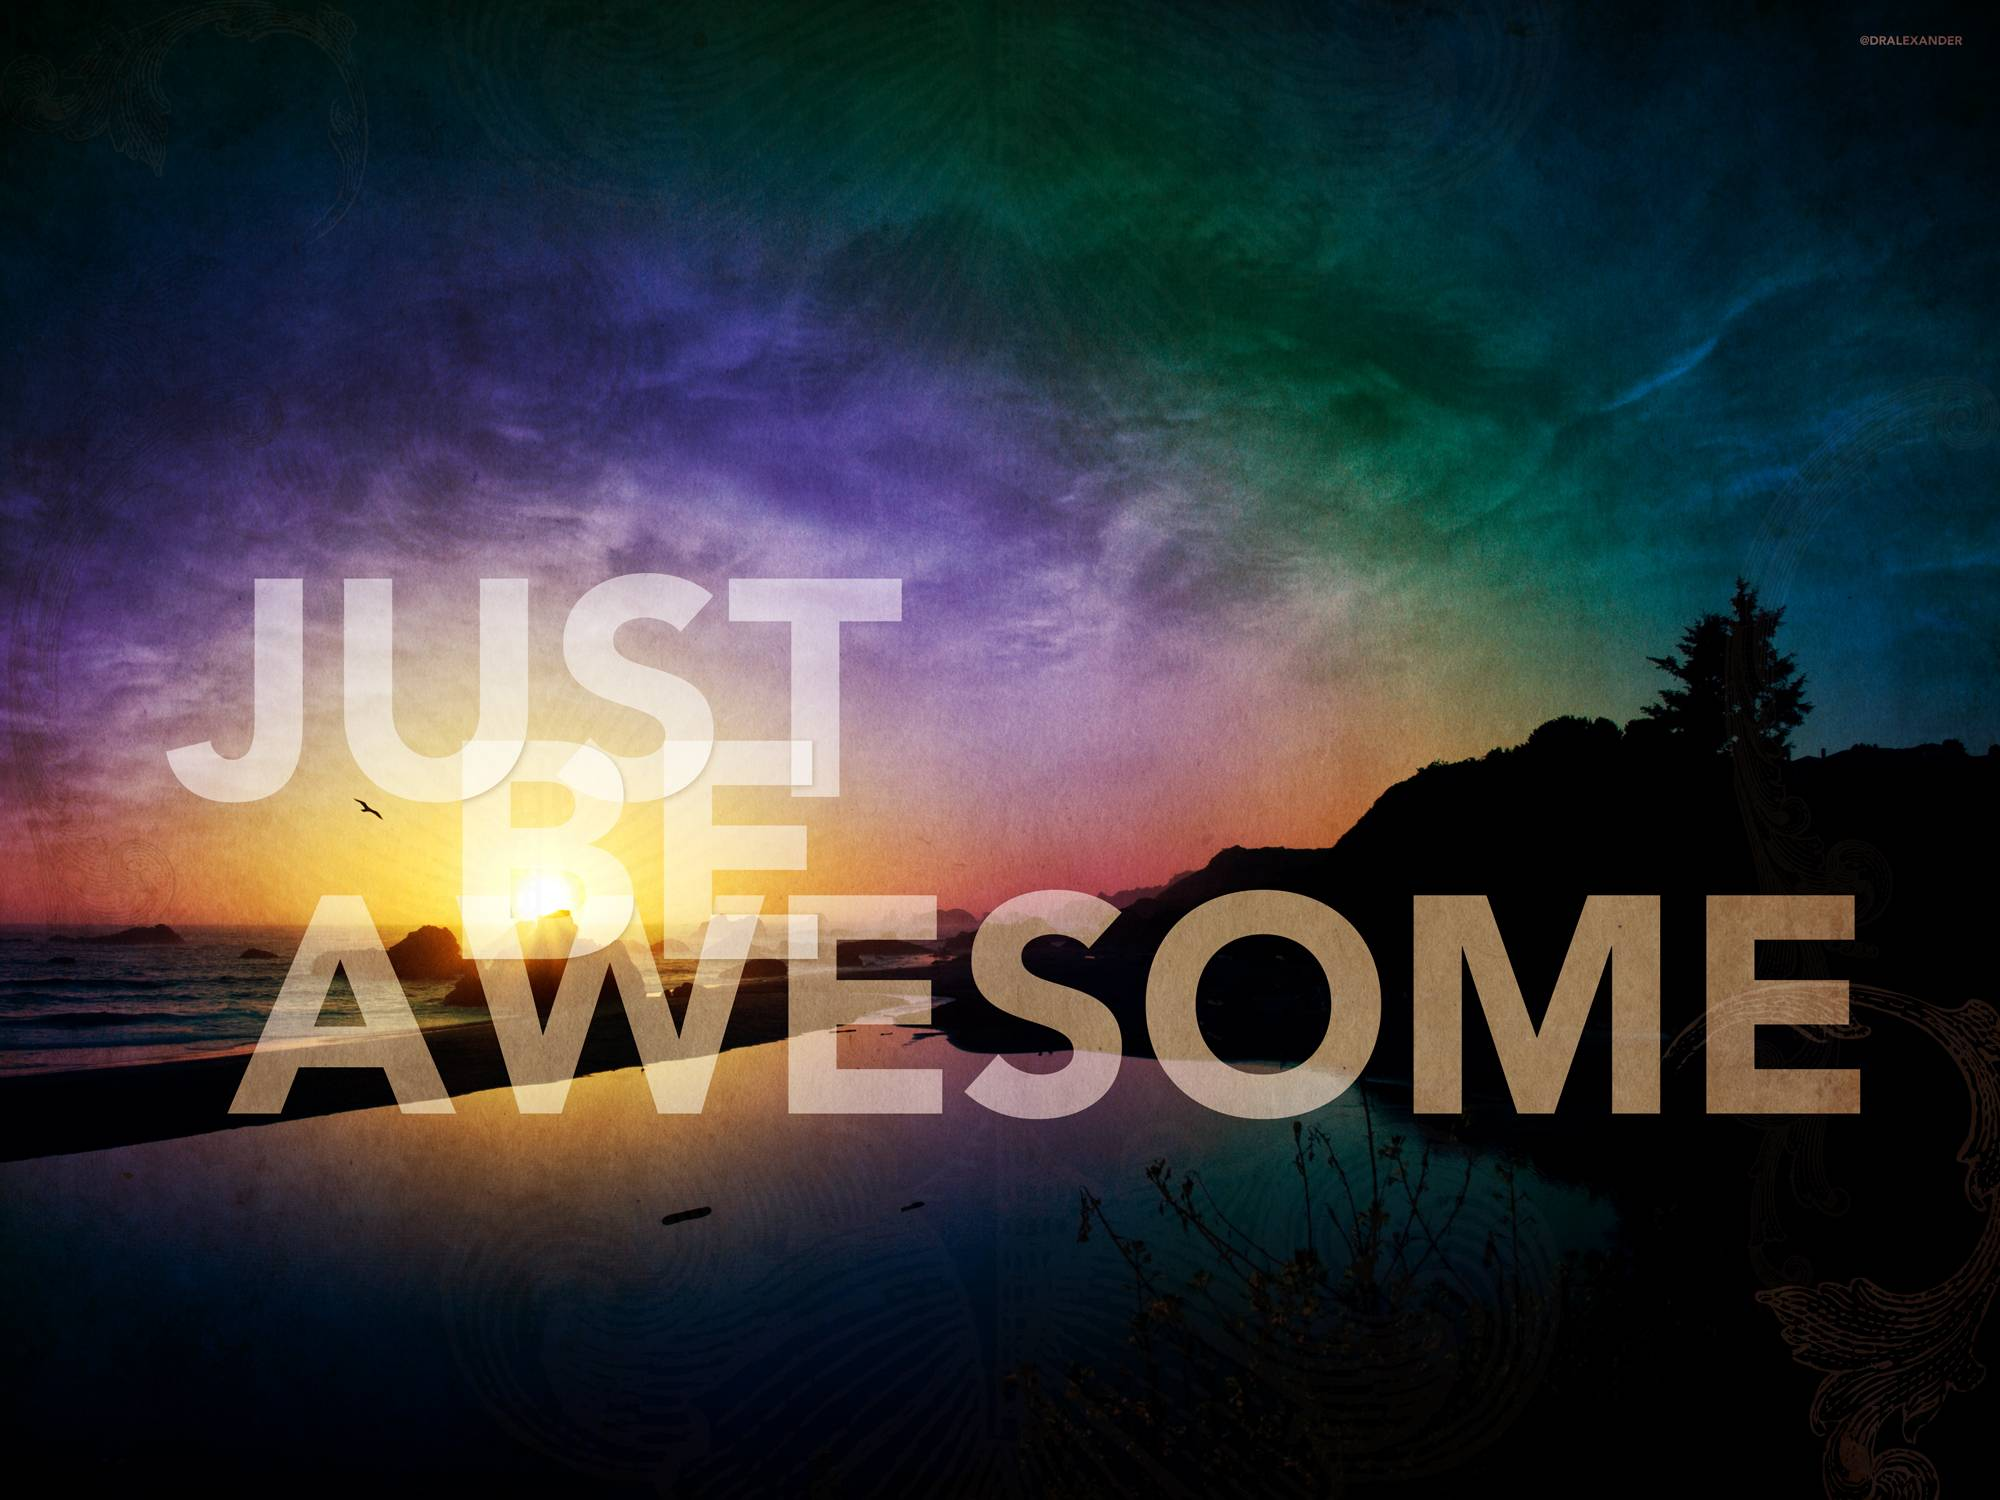 am awesome wallpaper - photo #15